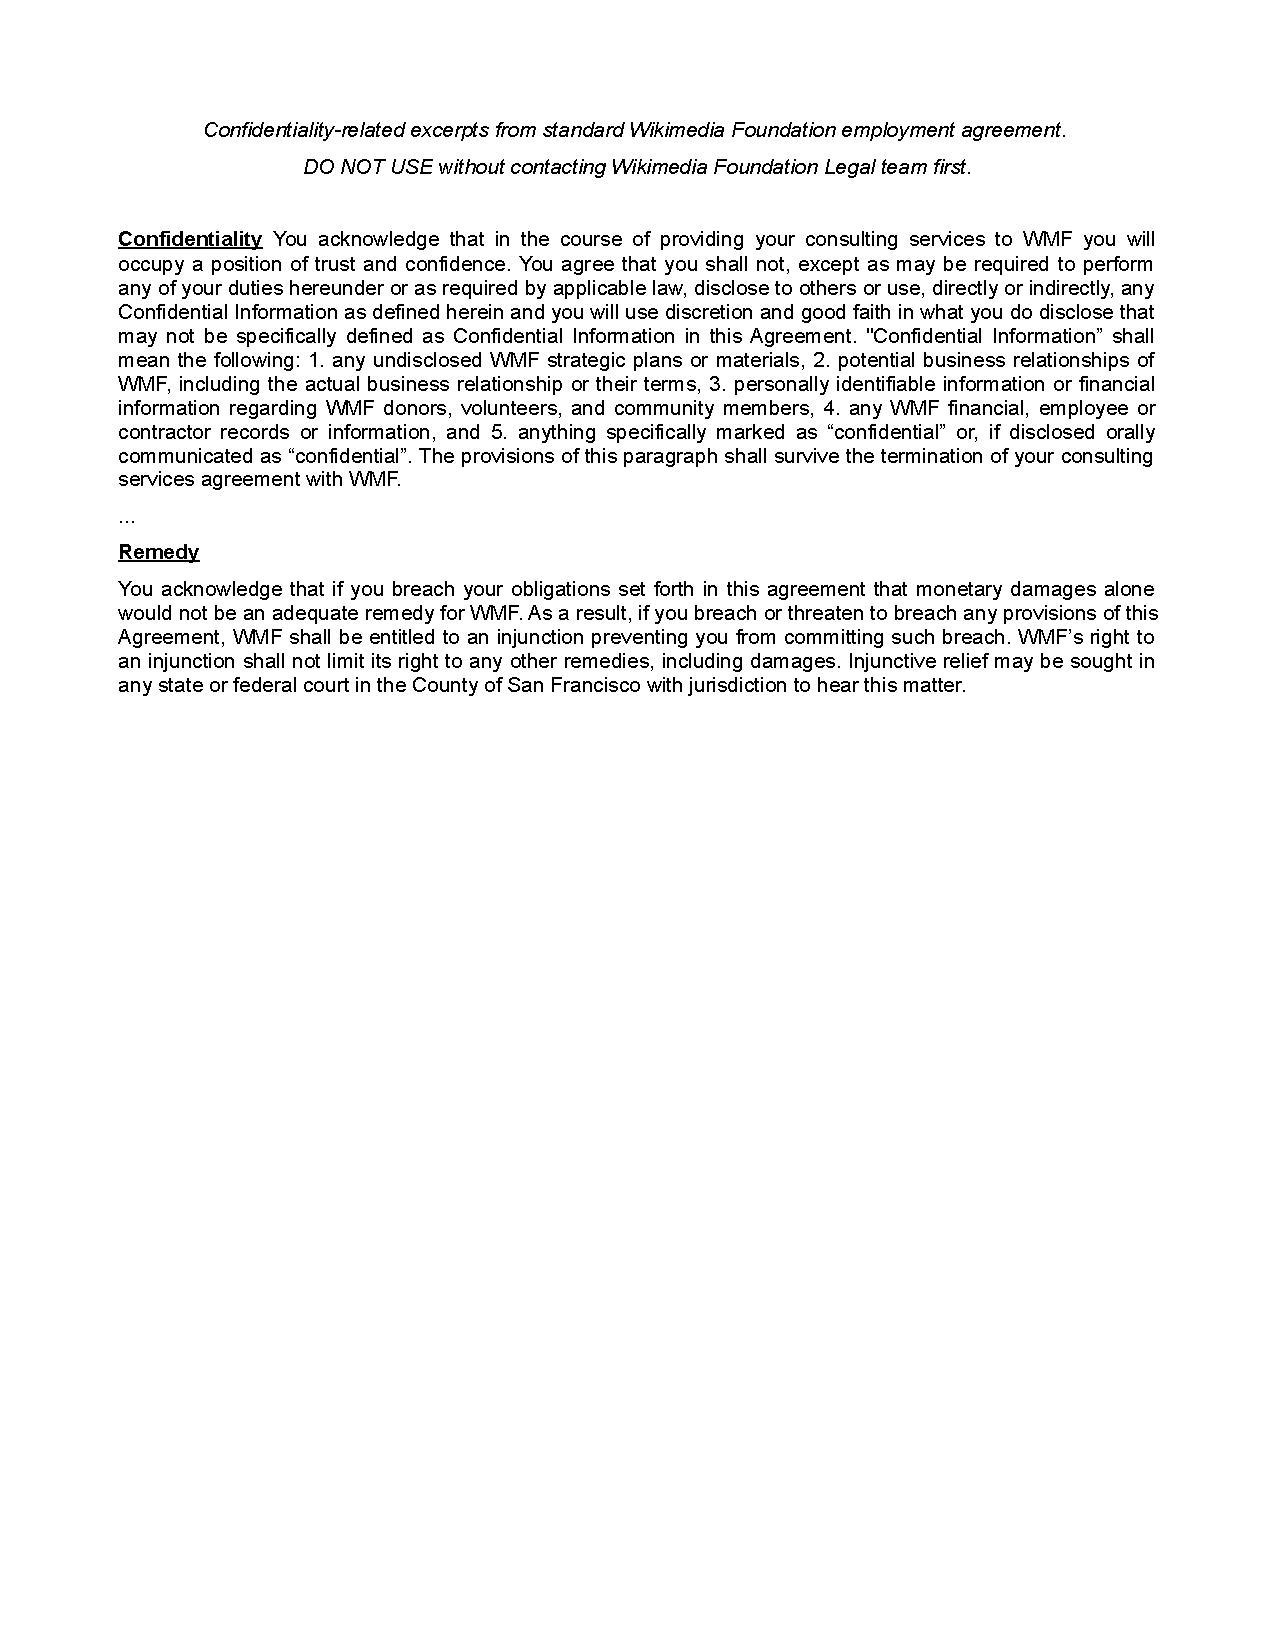 File:WMF Employment Agreement Confidentiality Clauses 2013.pdf